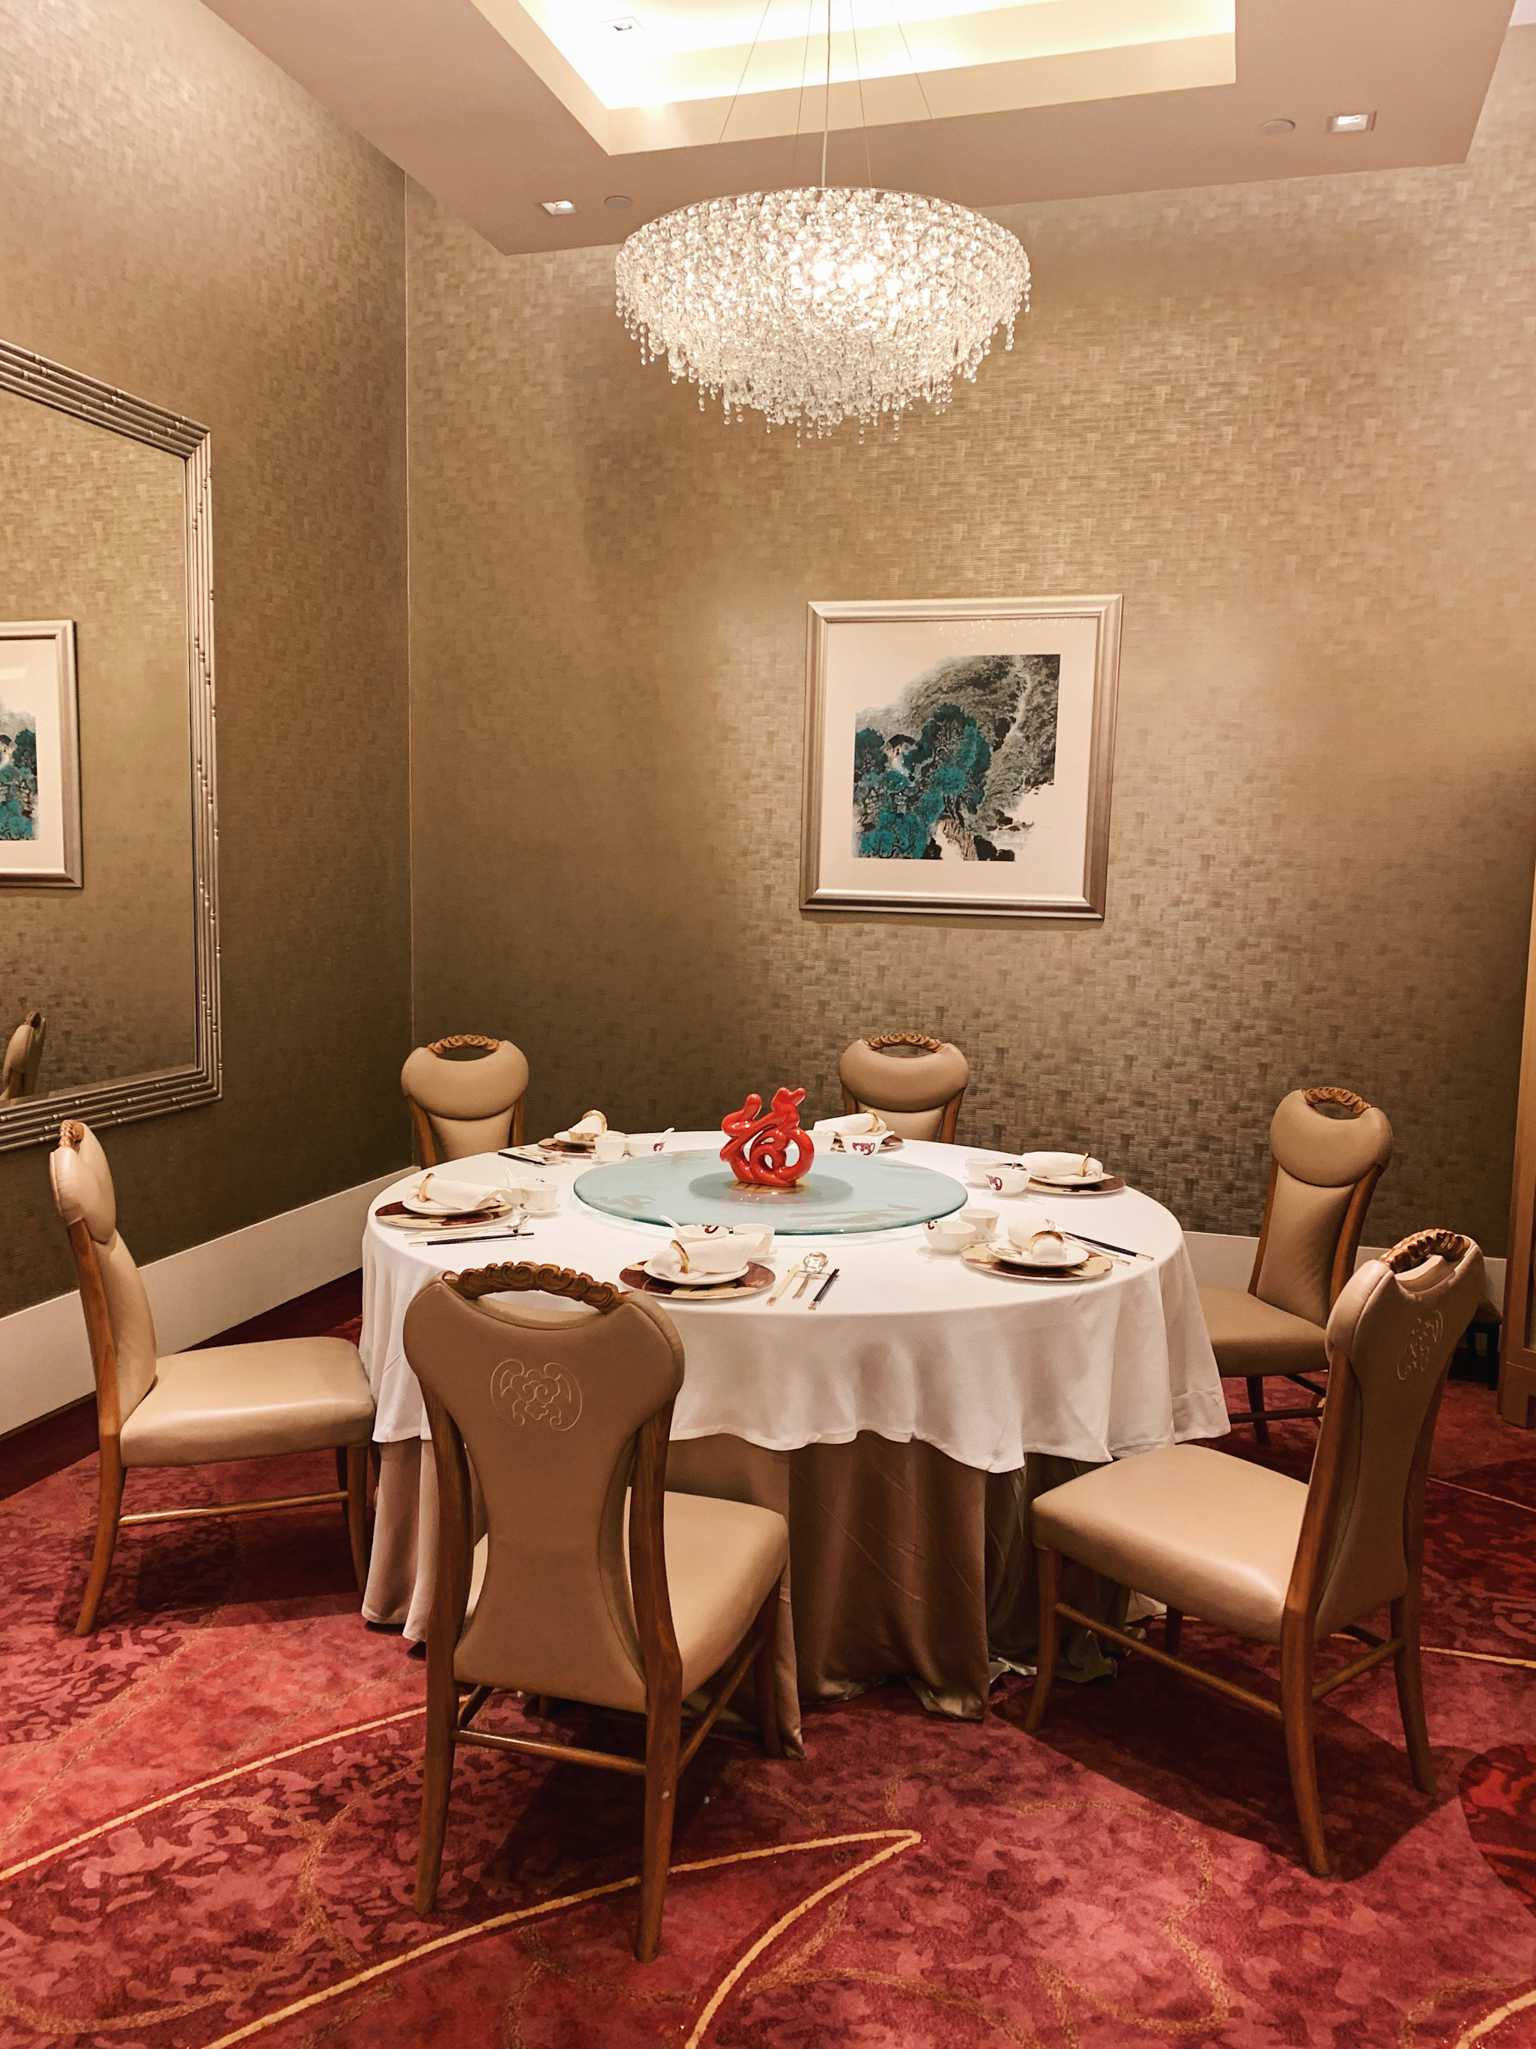 Galaxy Macau Fook Lam Moon private dining room